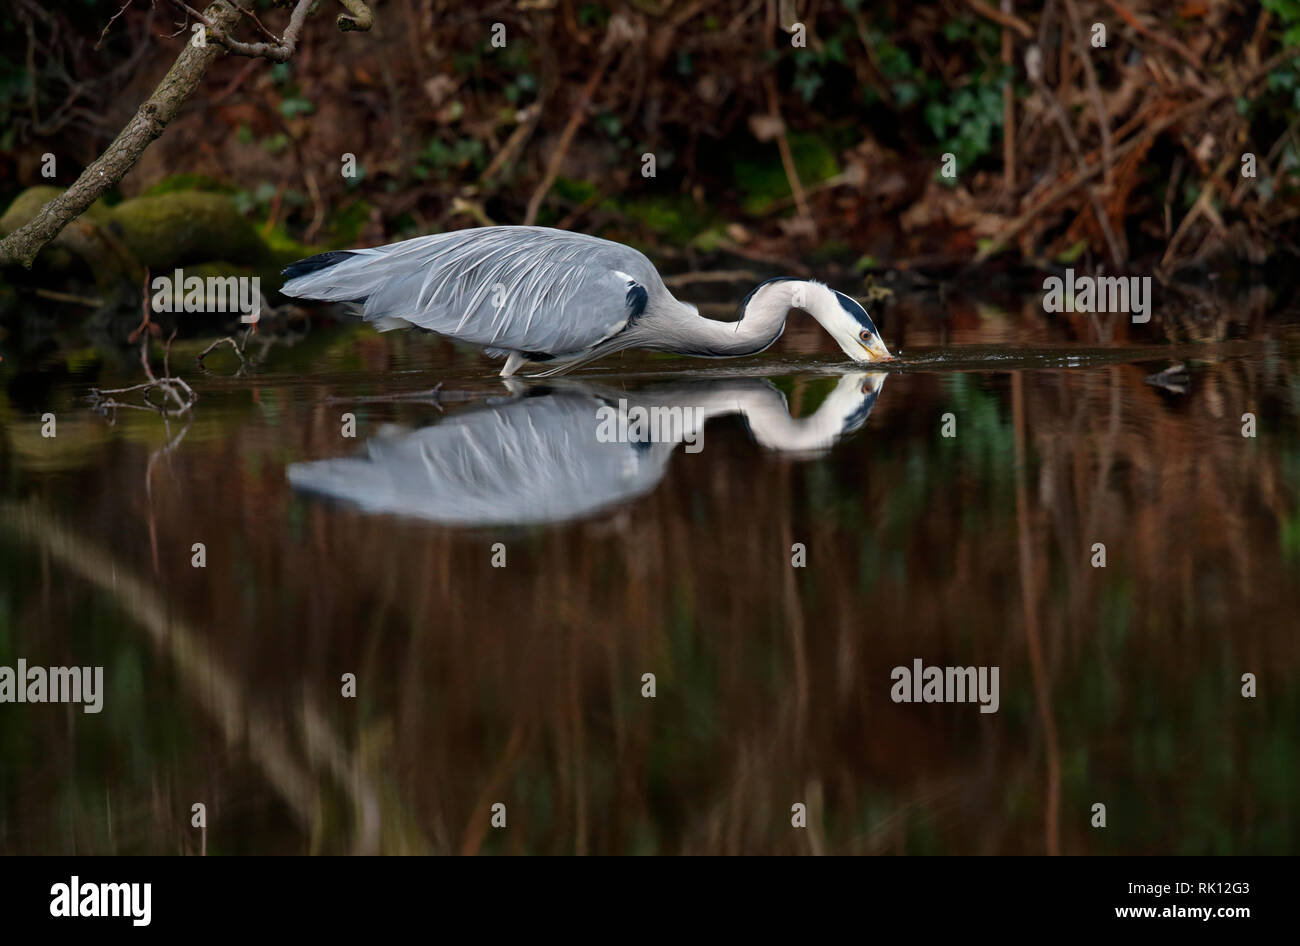 Grey Heron study - Endcliffe Park, Sheffield, Yorkshire - this bird was watched closely for an hour wading stealthily through the pool for fish - Stock Image